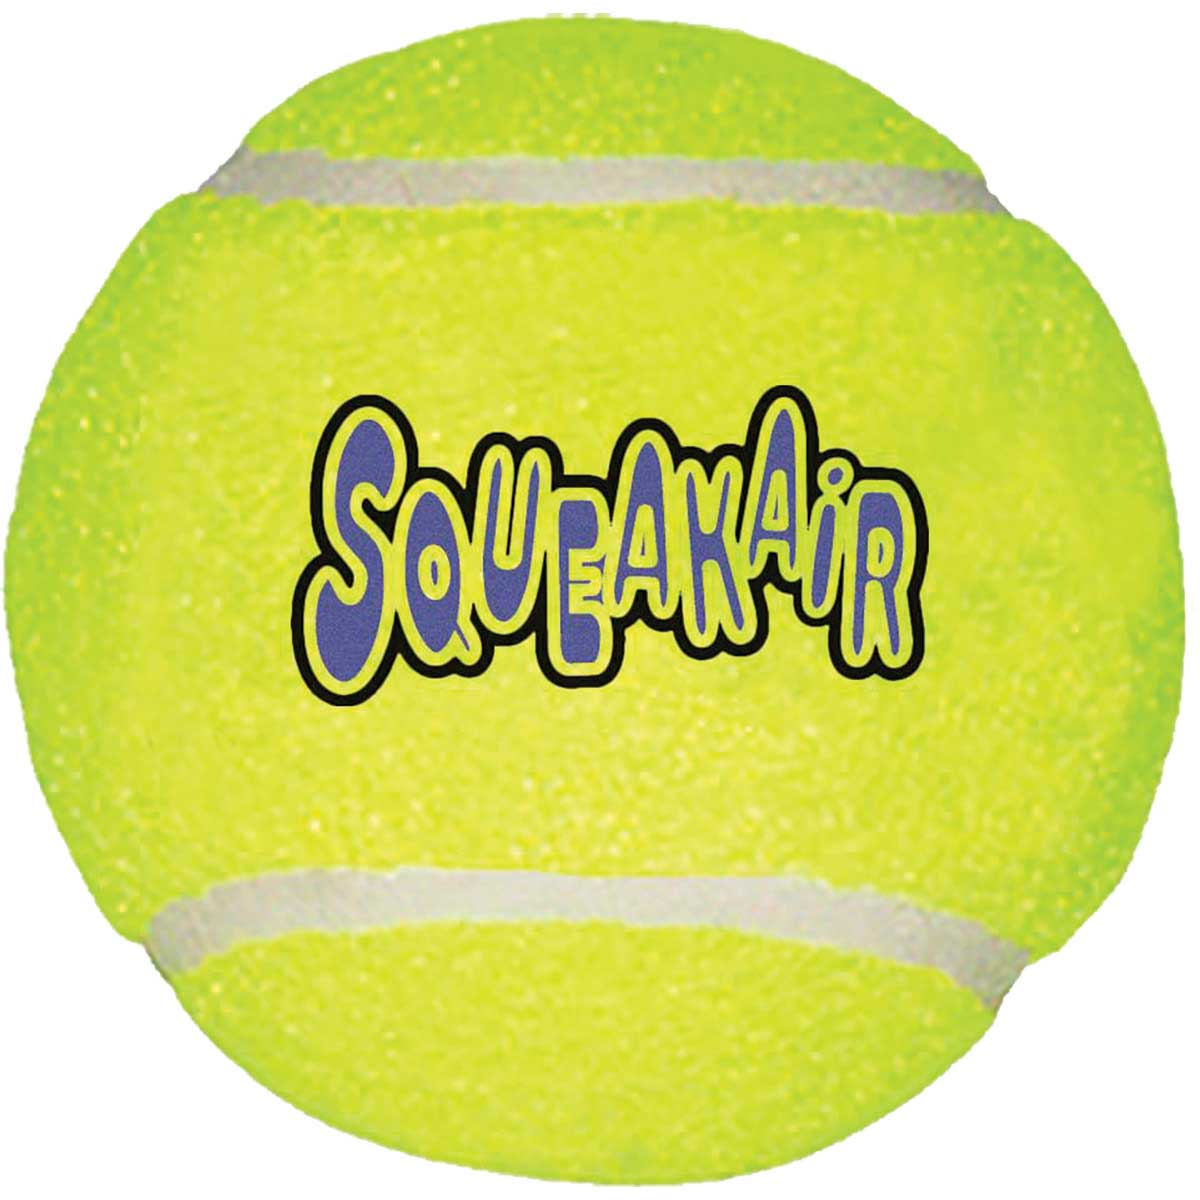 Large KONG Air Dog Squeaker Tennis Ball